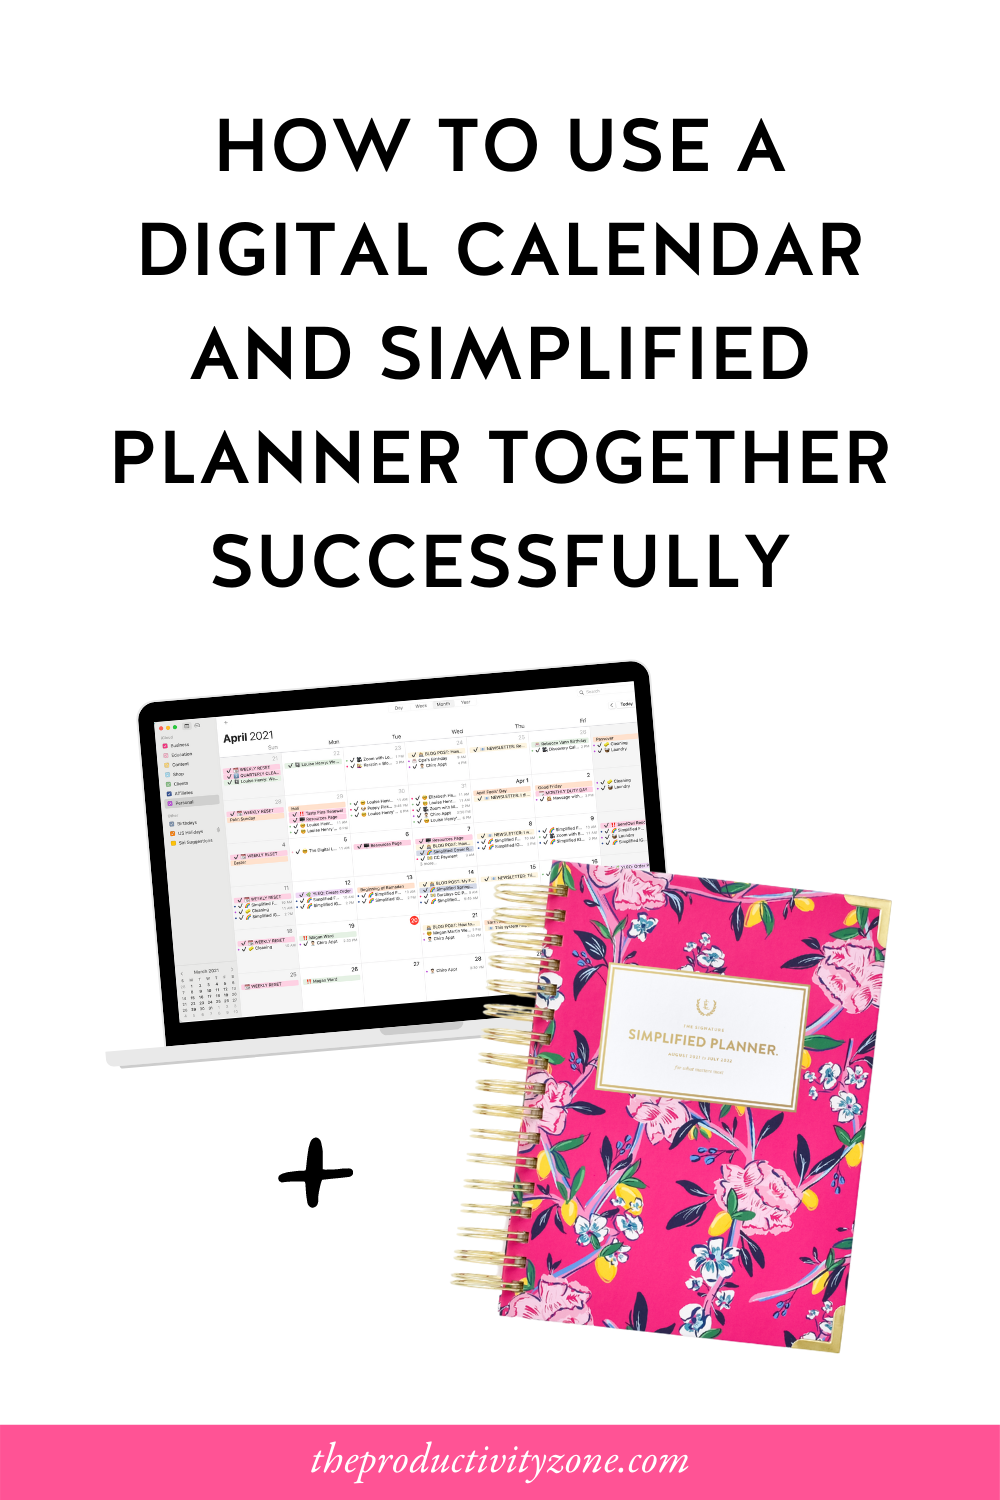 Open laptop showcasing digital calendar and Daily Fuchsia Chinoiserie Simplified Planner